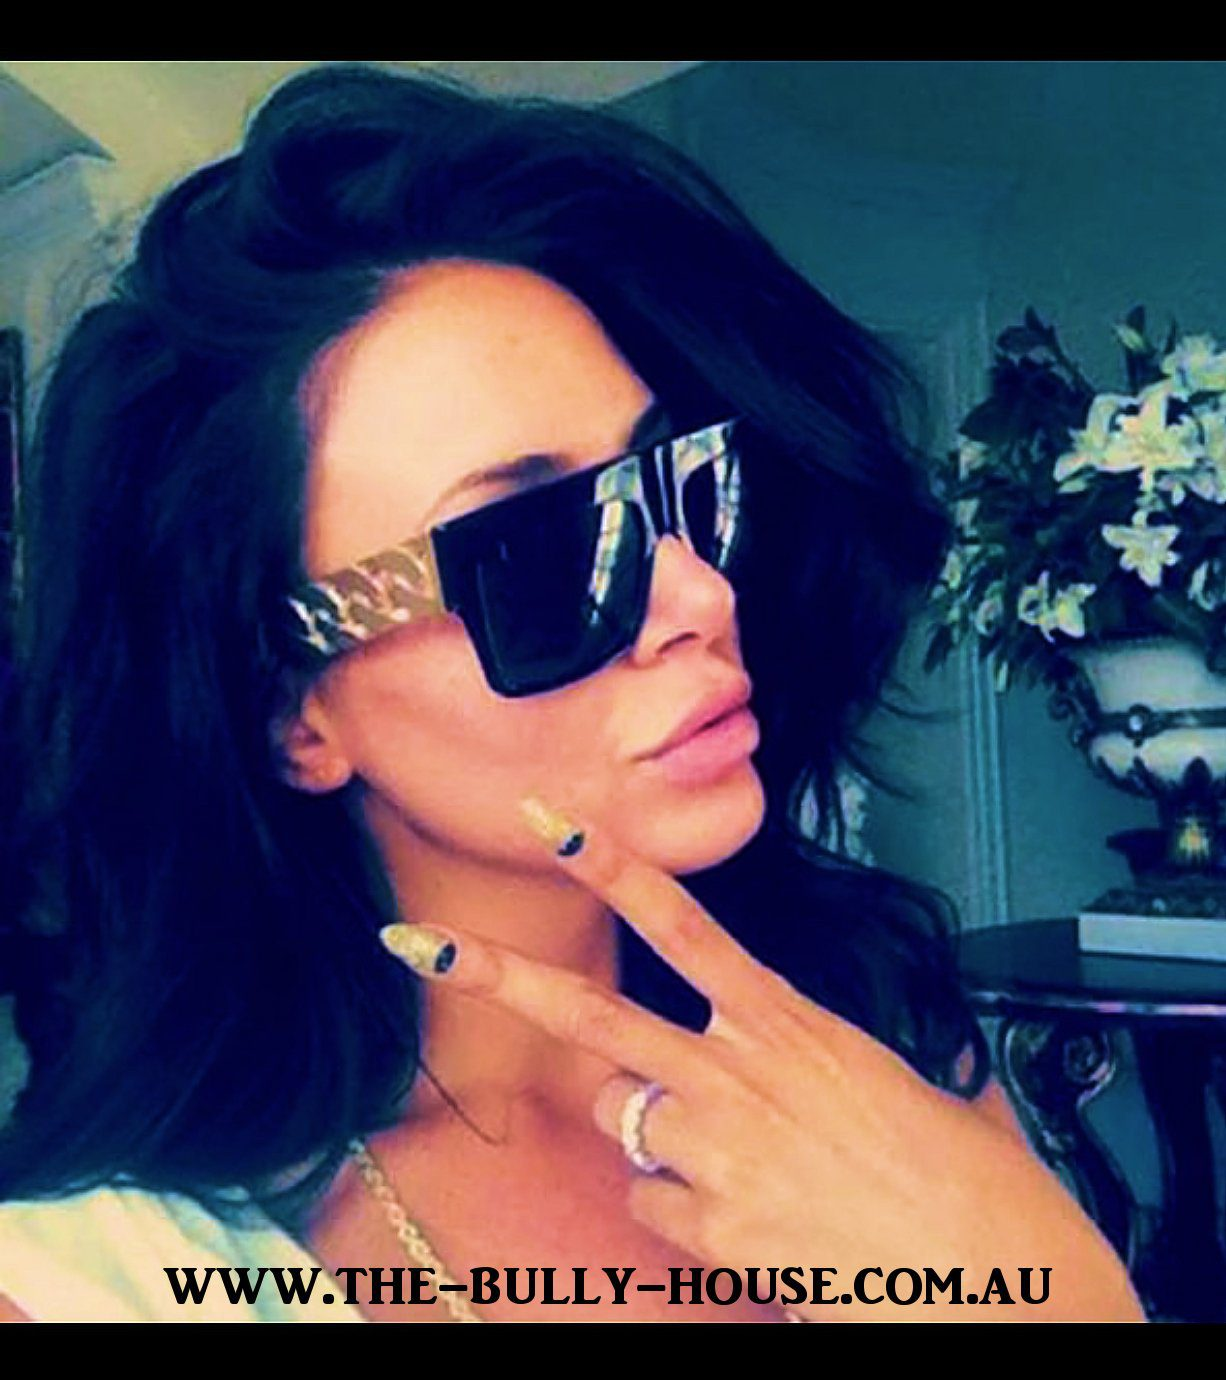 CUBAN LINK Sunglasses - Gold / Black - Unisex - by -THE BULLY HOUSE